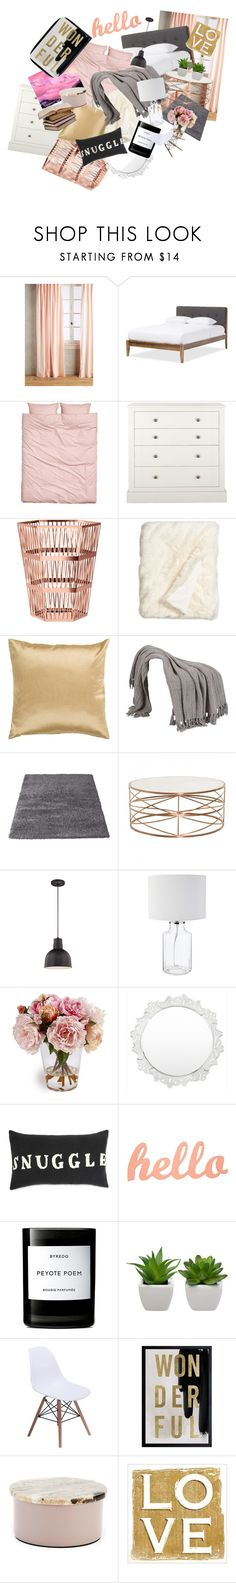 """Untitled #106"" by charlotteadavies30 ❤ liked on Polyvore featuring interior, interiors, interior design, home, home decor, interior decorating, Anthropologie, Ghidini 1961, Nordstrom and Surya"